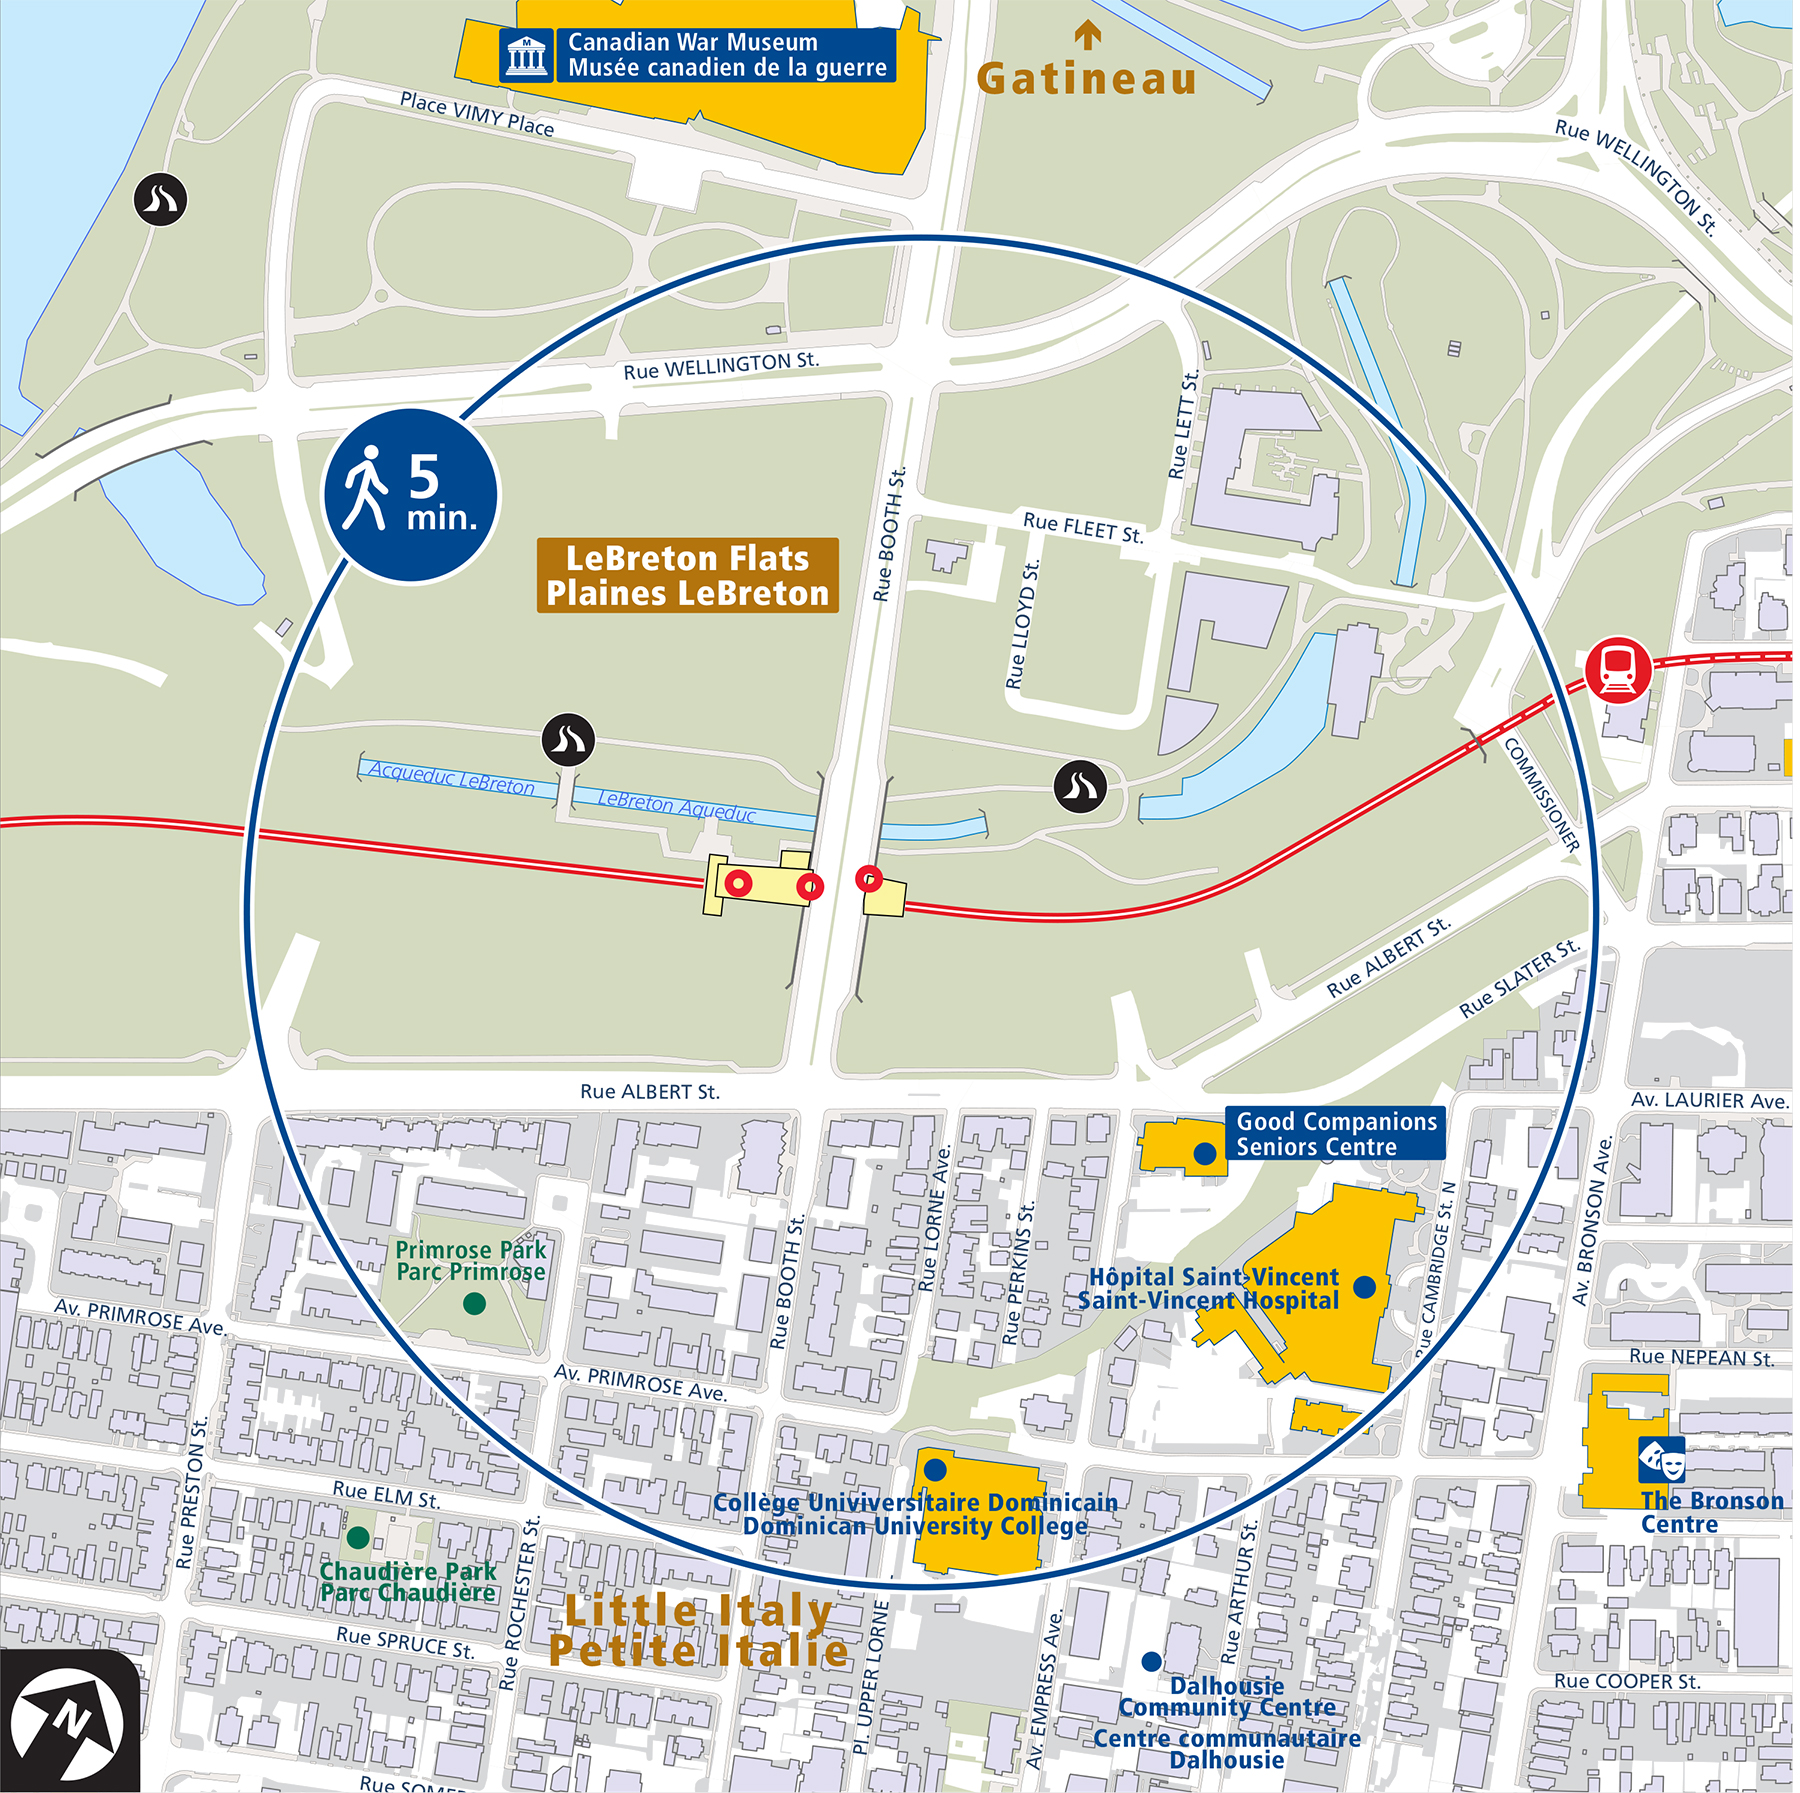 Places of interest within a 5-minute walk of Pimisi Station